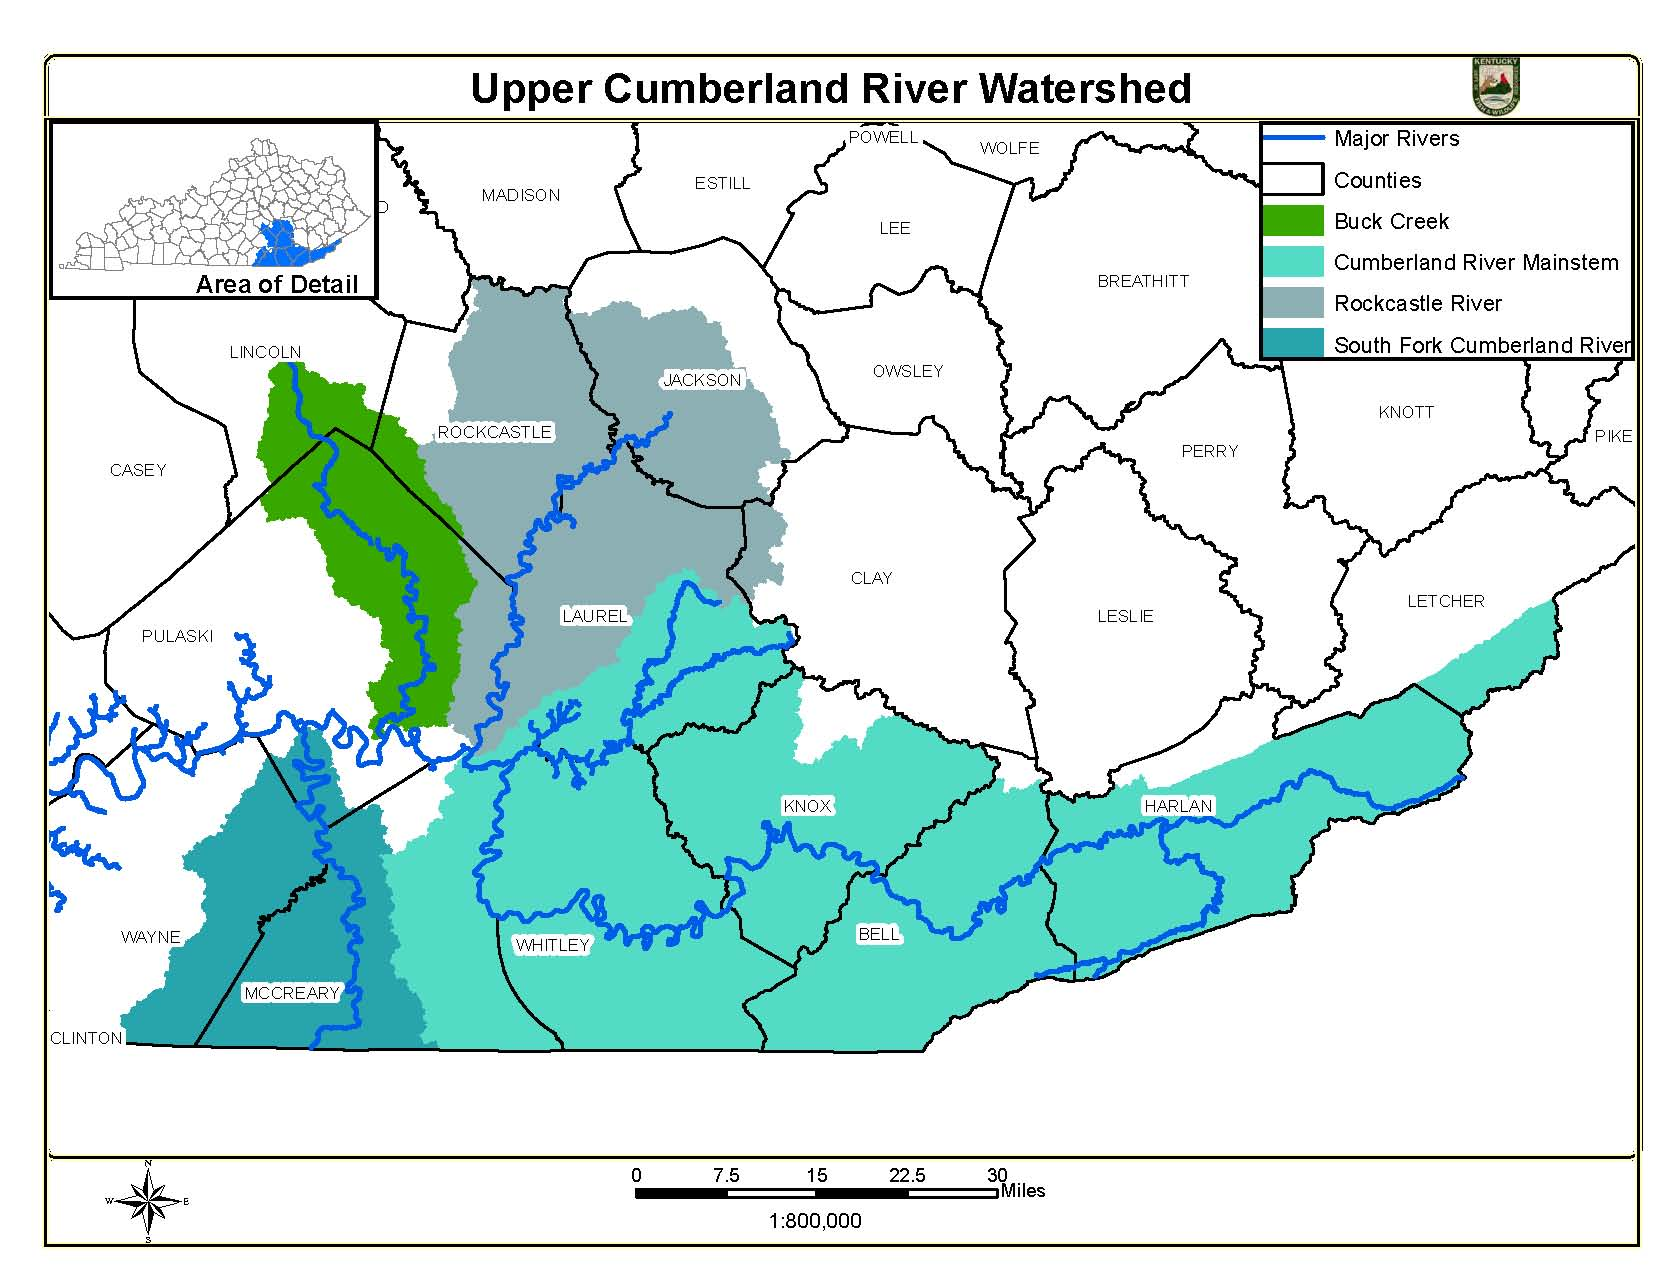 Upper Cumberland River Watershed